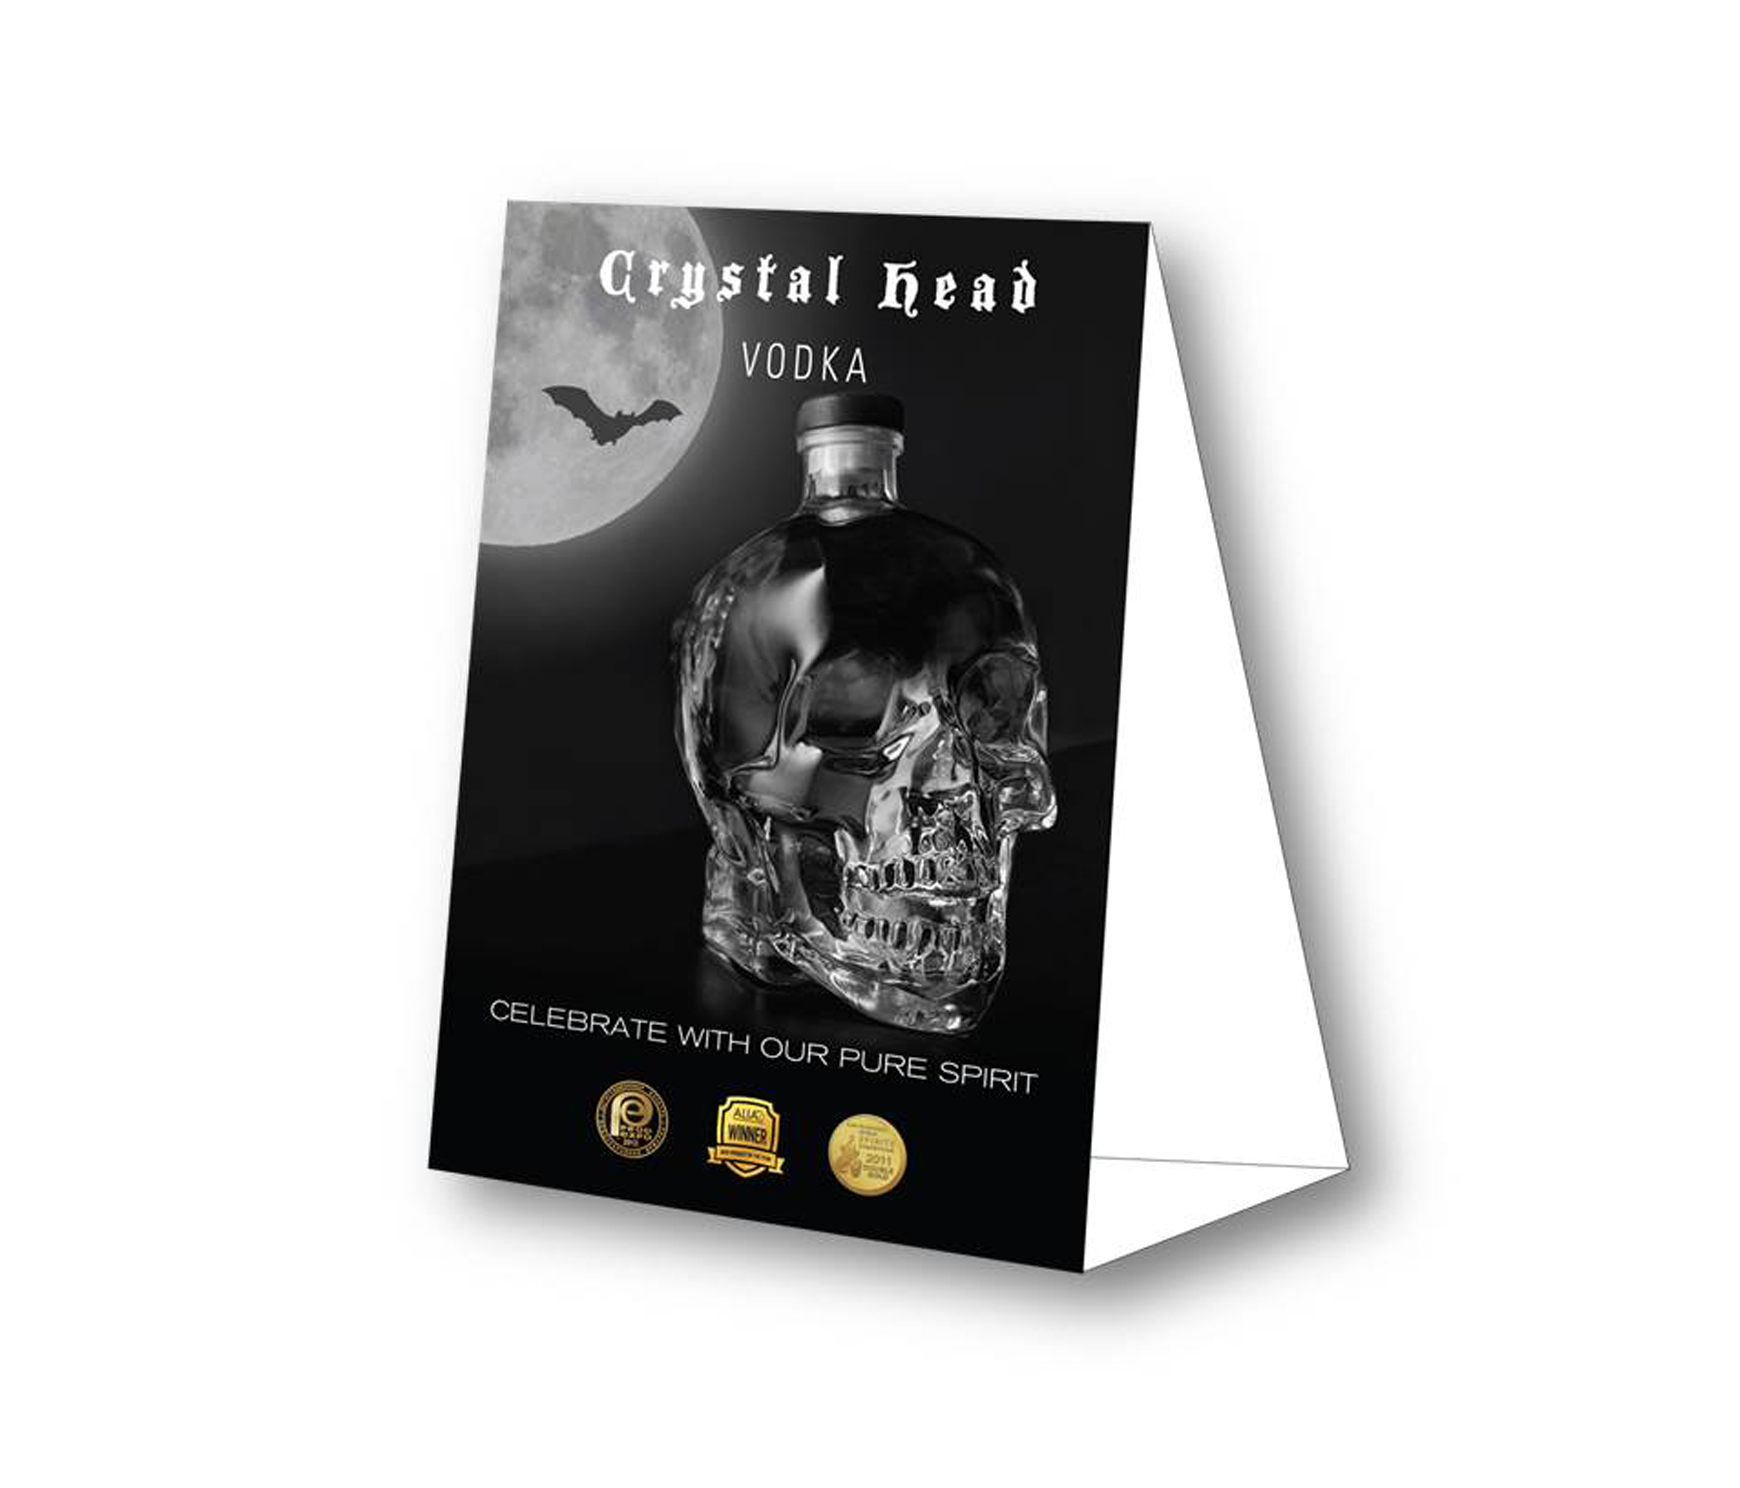 CrystalHead Vodka TableTent